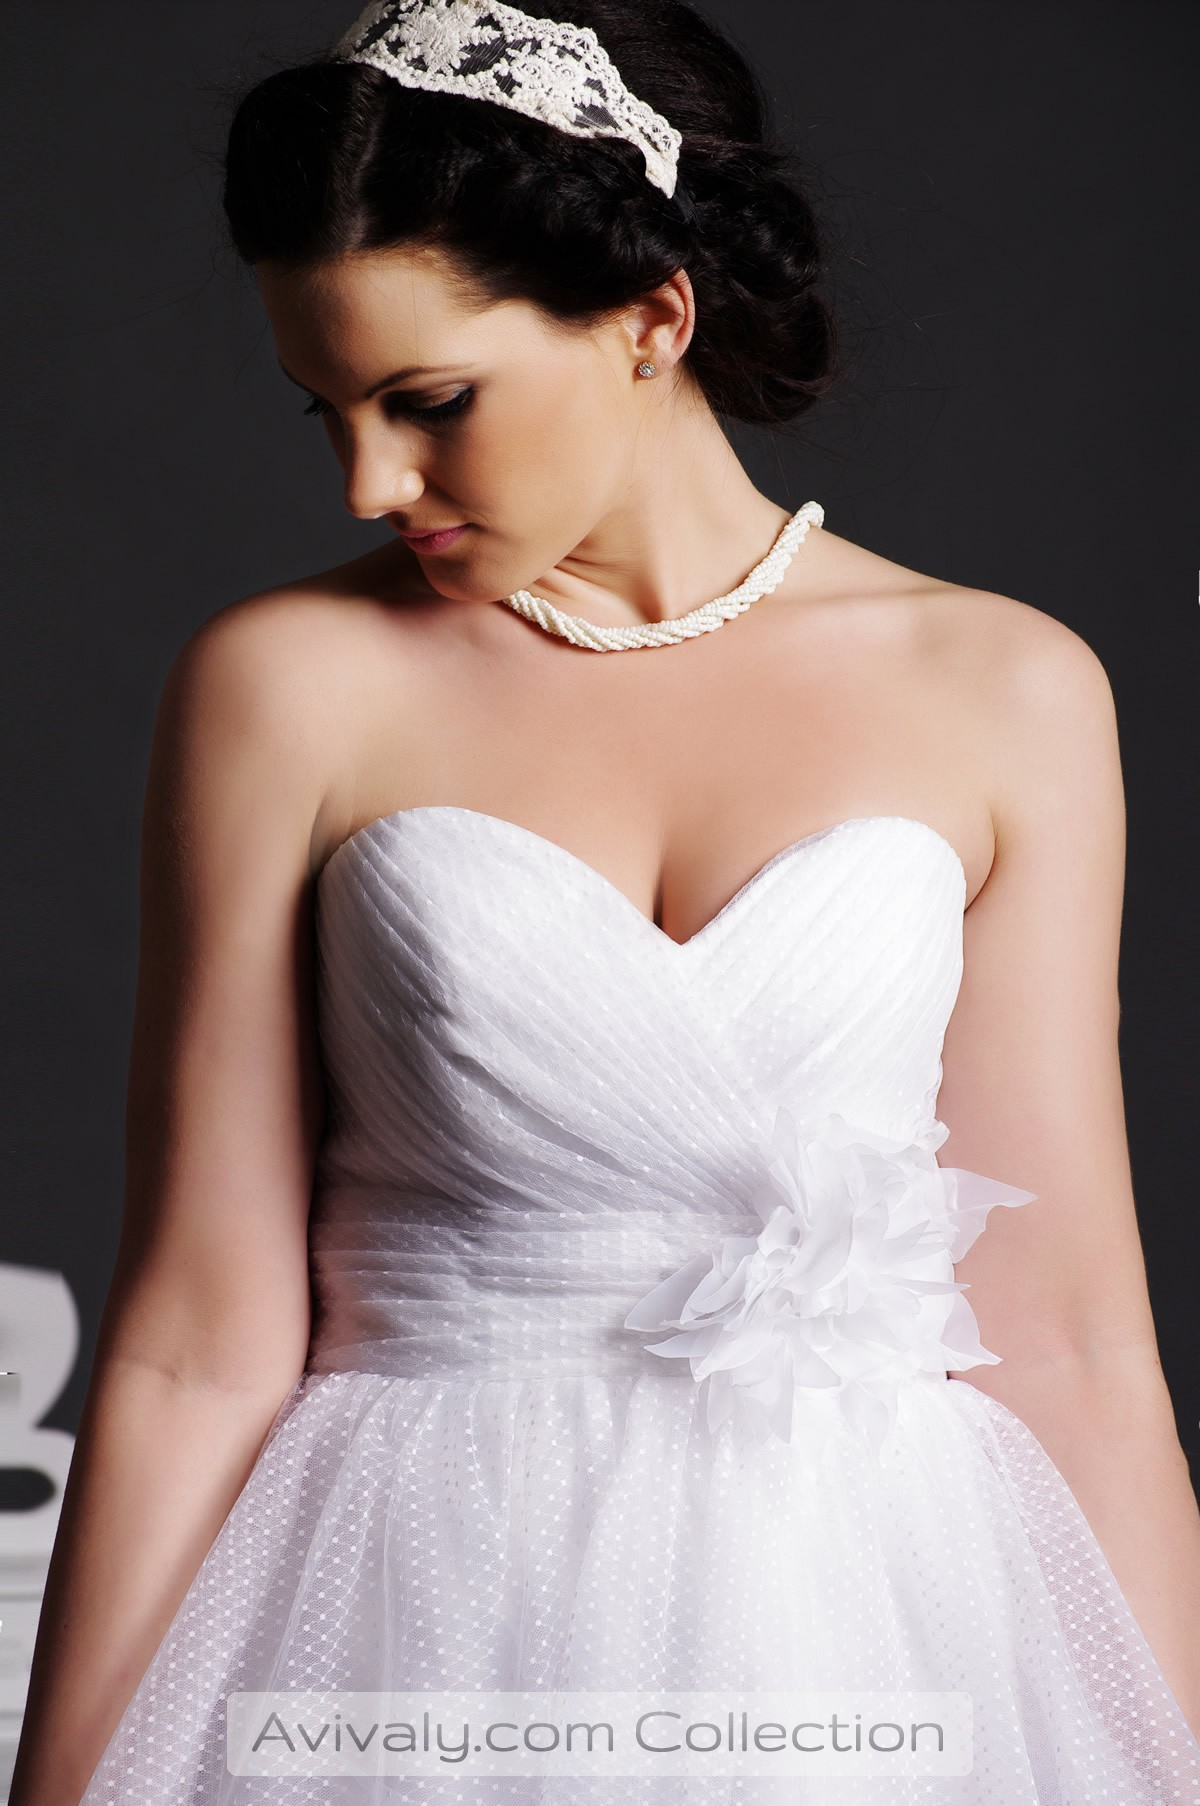 Nicola - A Blooming Flower on Empire Waist of Sweetheart Bodice